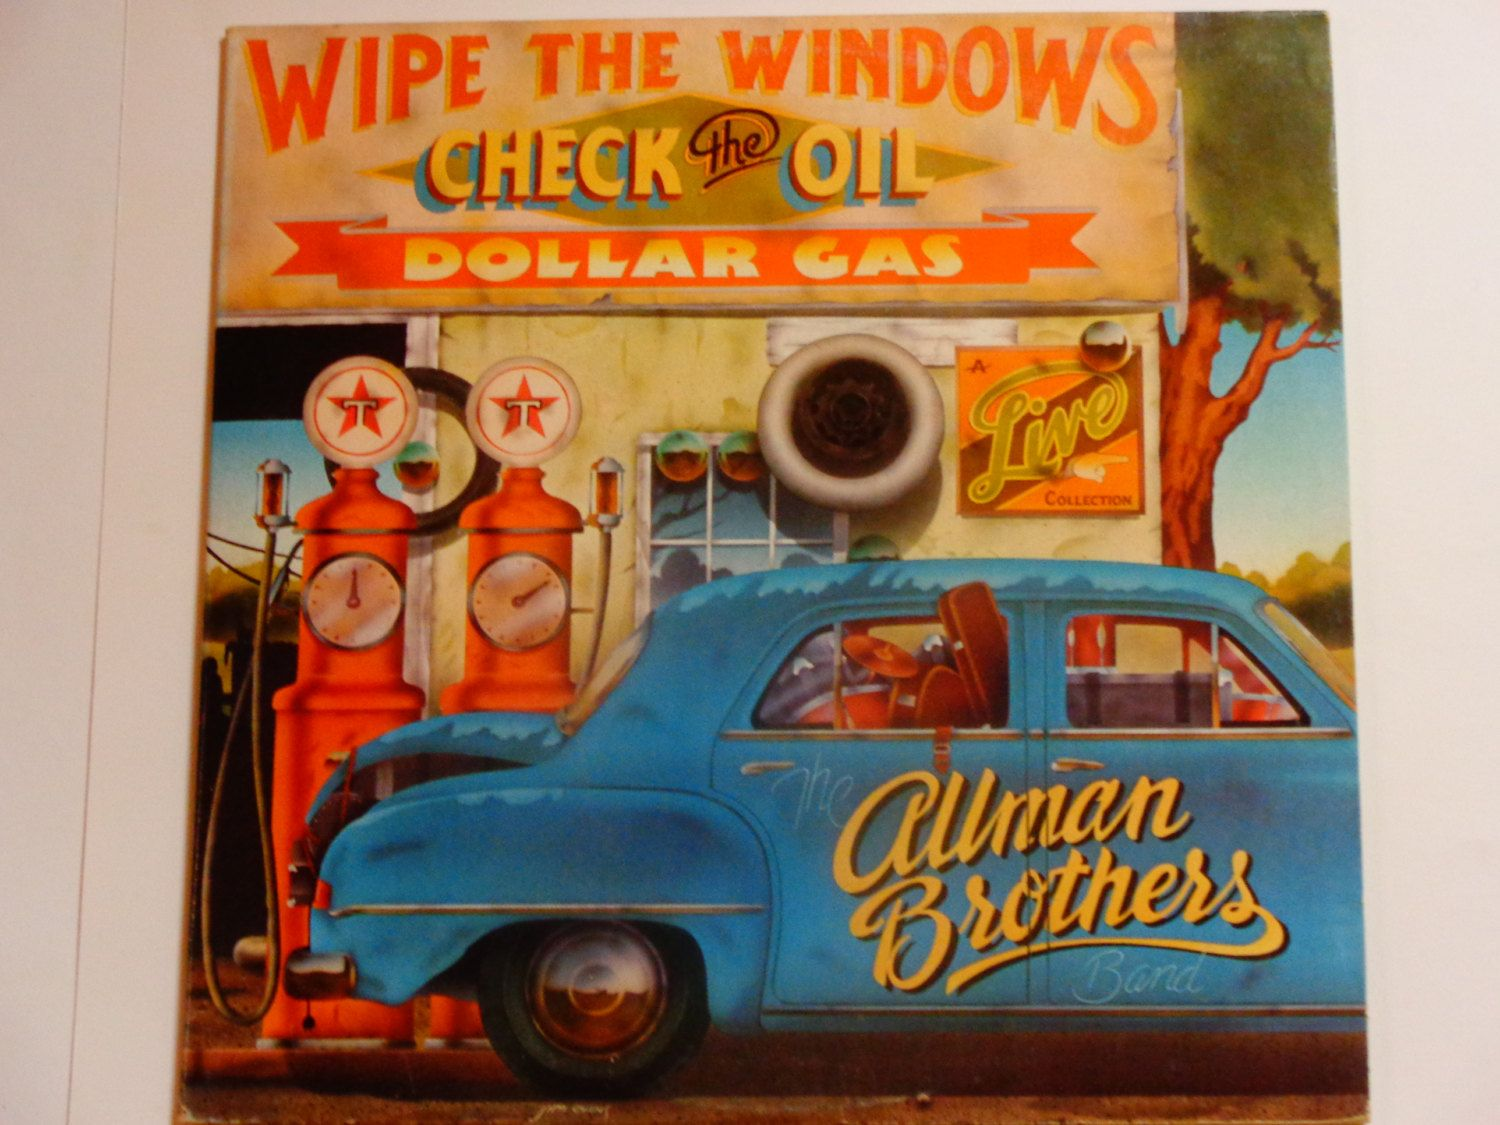 The Allman Brothers Band Wipe The Windows Check The Oil Live Double Album Blues Rock Capricorn Re Blues Rock Vintage Vinyl Records Allman Brothers Band